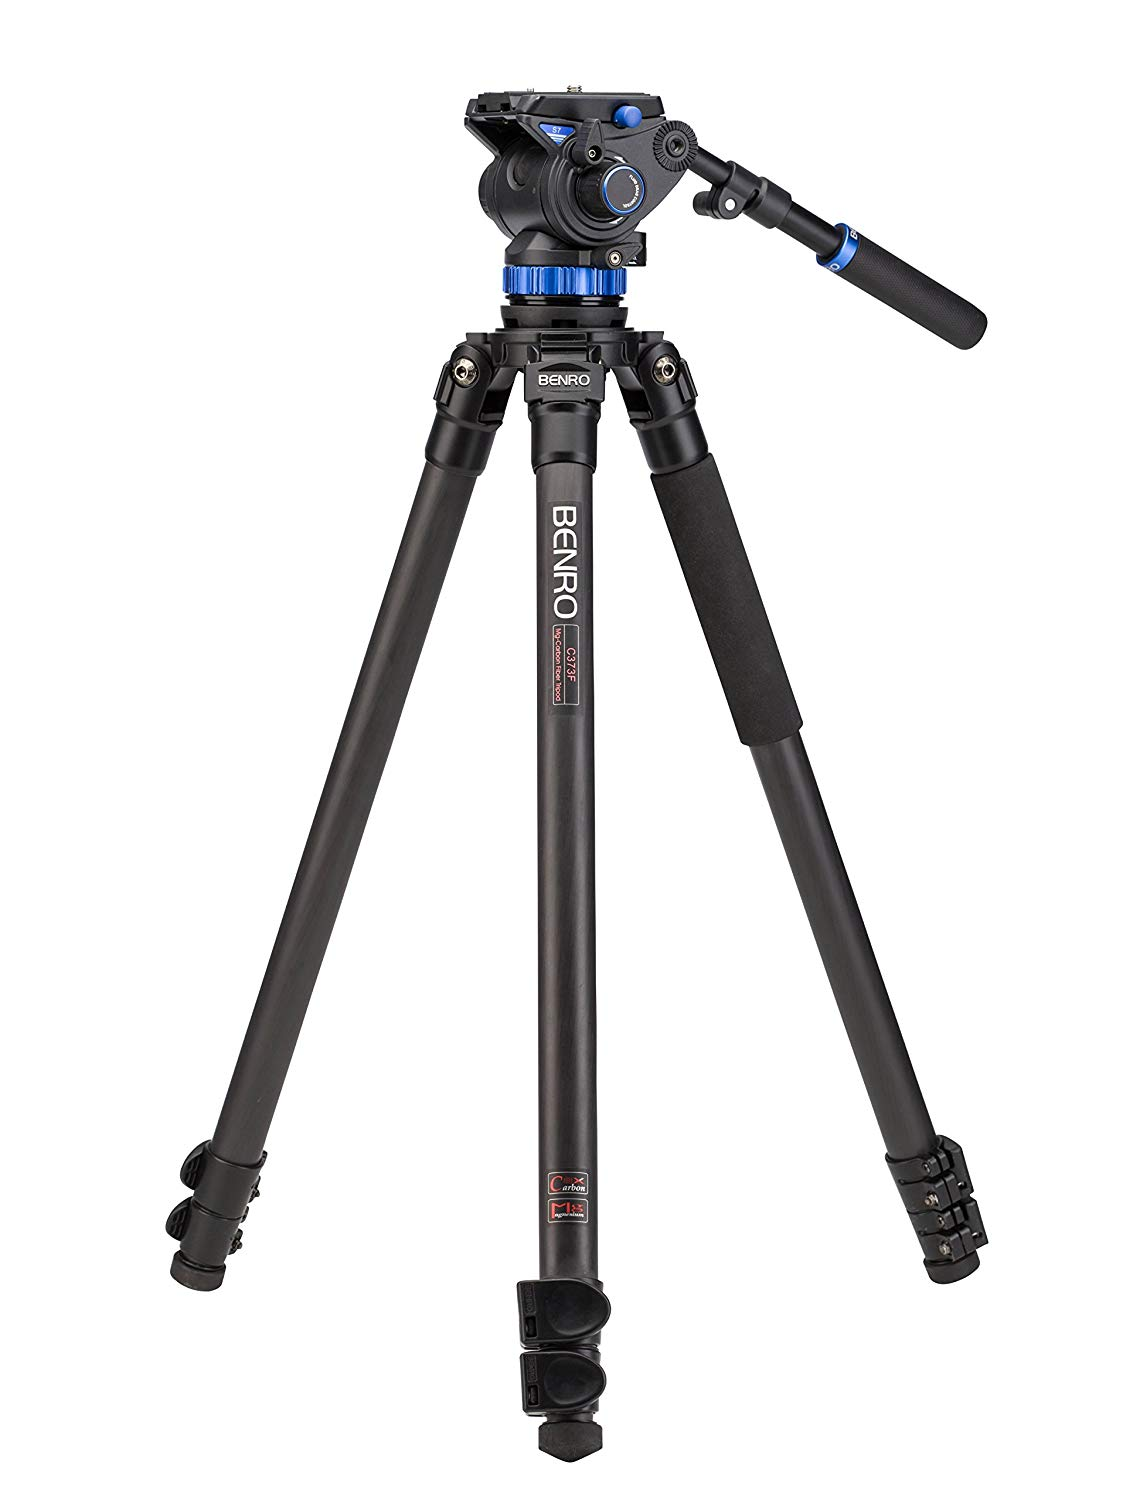 Benro S7 Carbon Fiber Video Tripod Kit (C373FBS7)